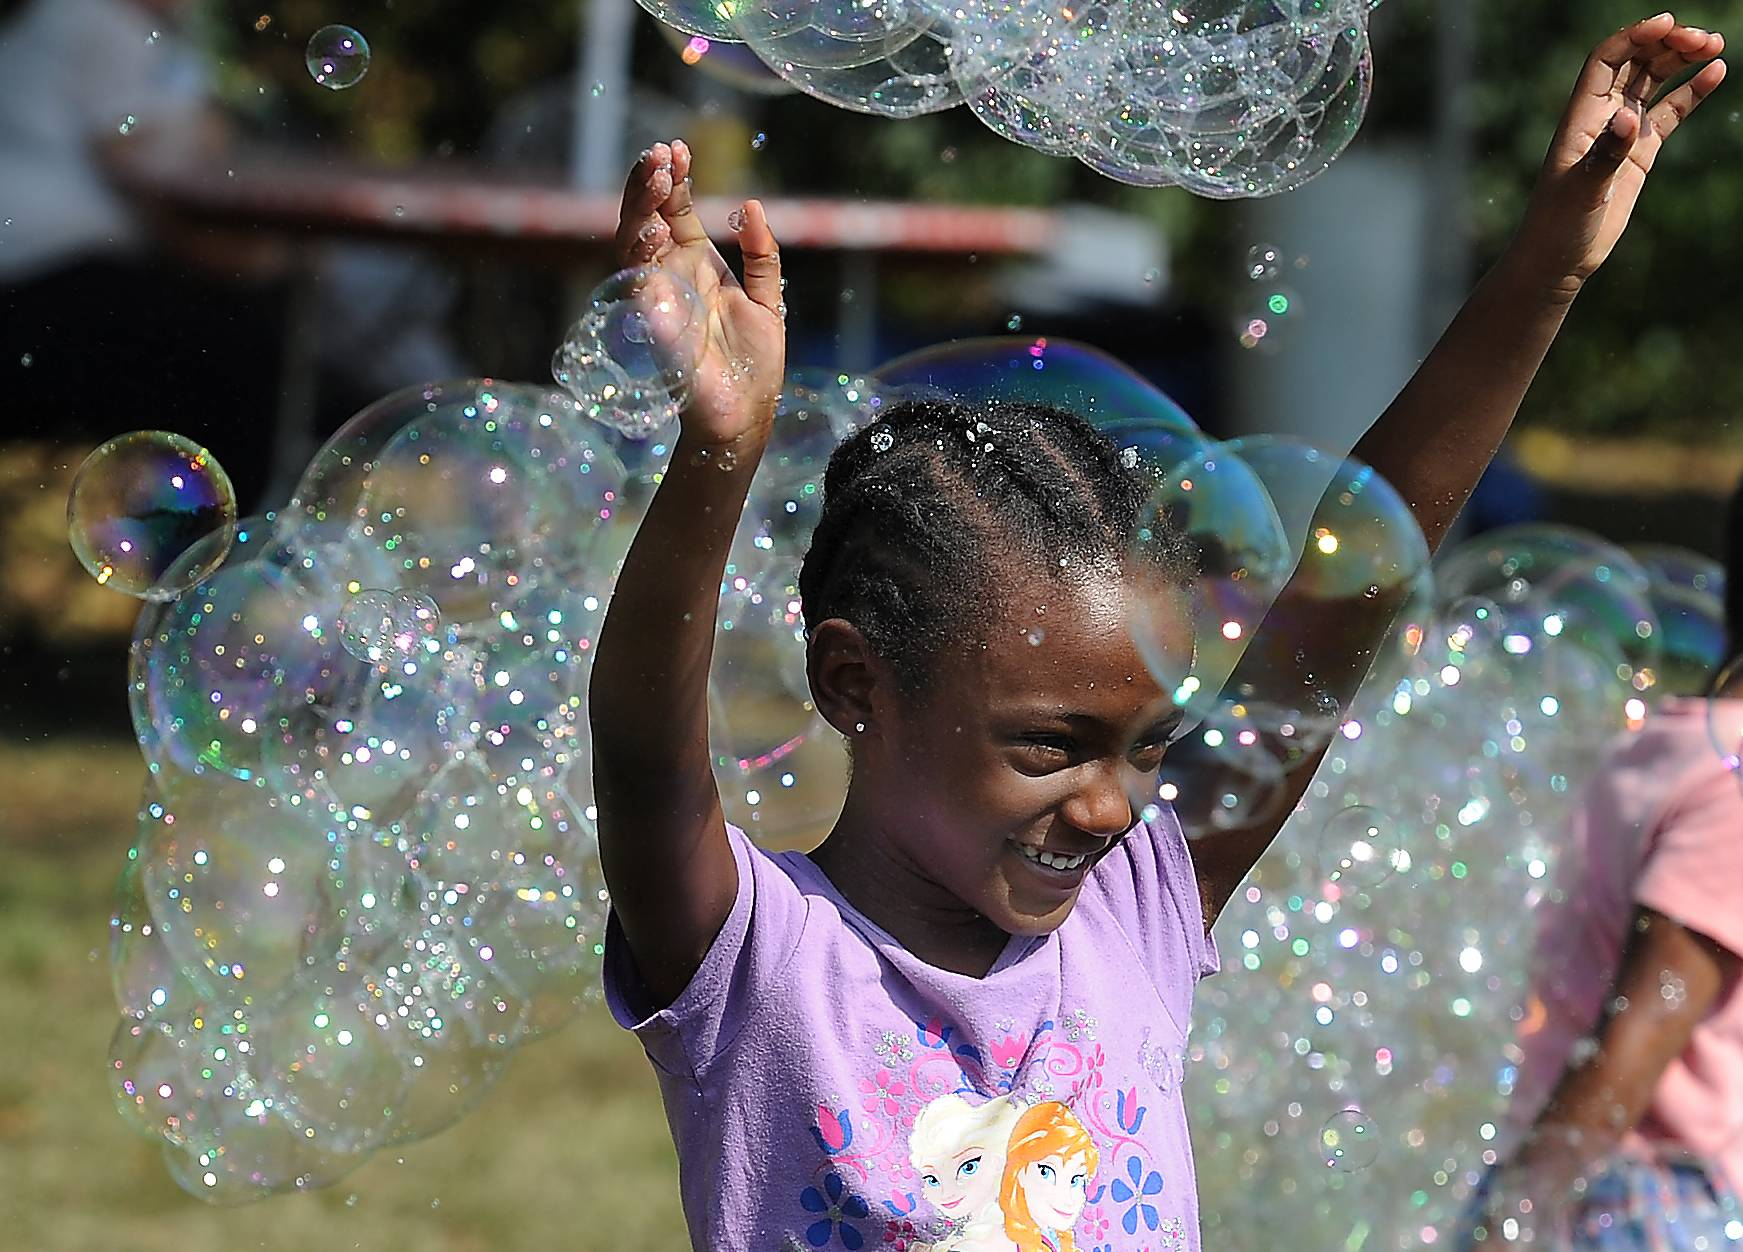 Aaliyah Siggers, 5, of Berwyn plays in the bubbles produced by Gordy Tobutt of Fox River Grove, also called The Bubbler, at the Long Grove Apple Fest on Saturday.